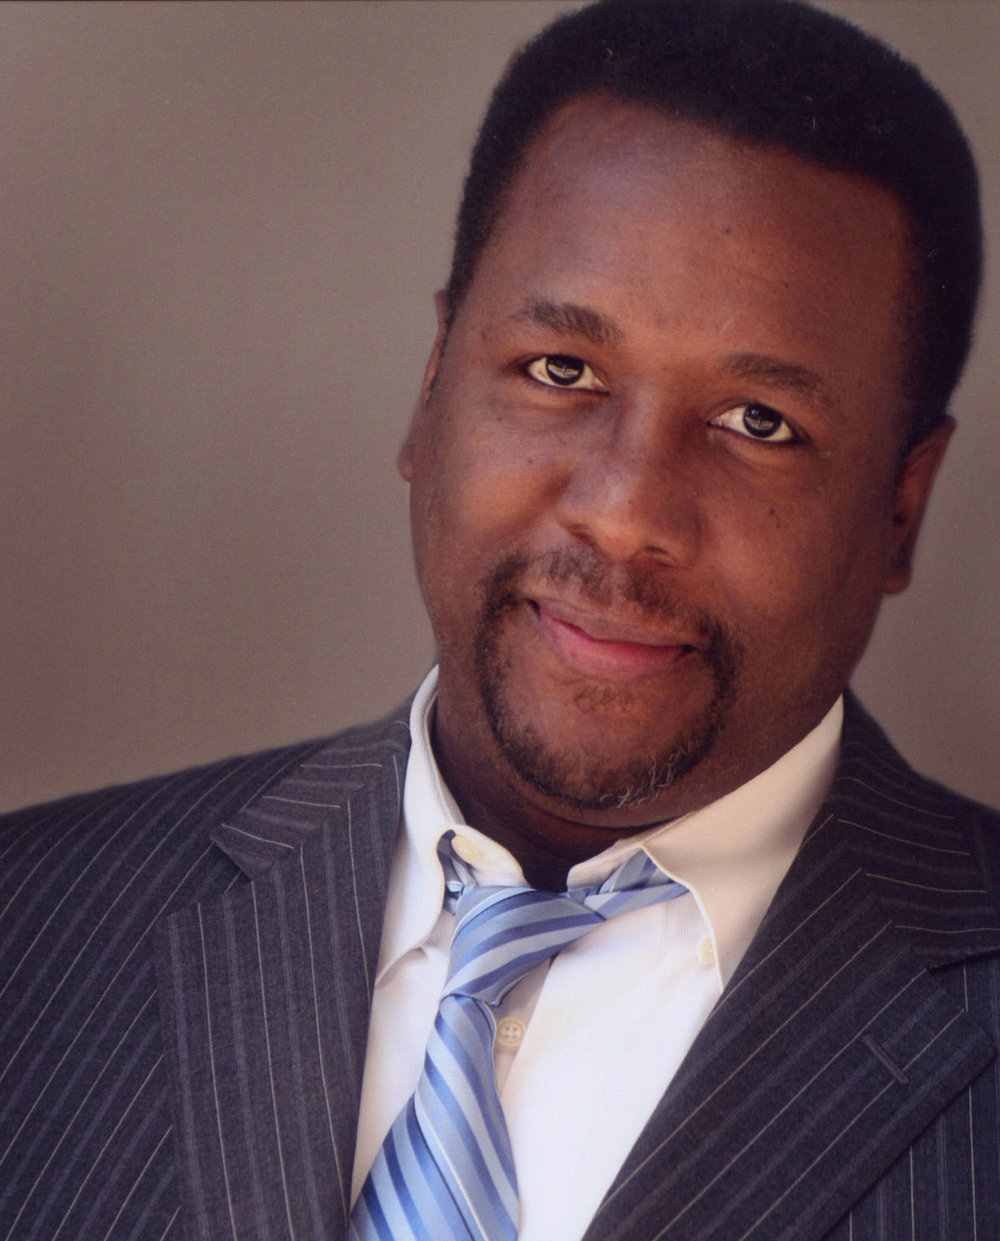 Wendell Pierce (Image used with permission from the actor)